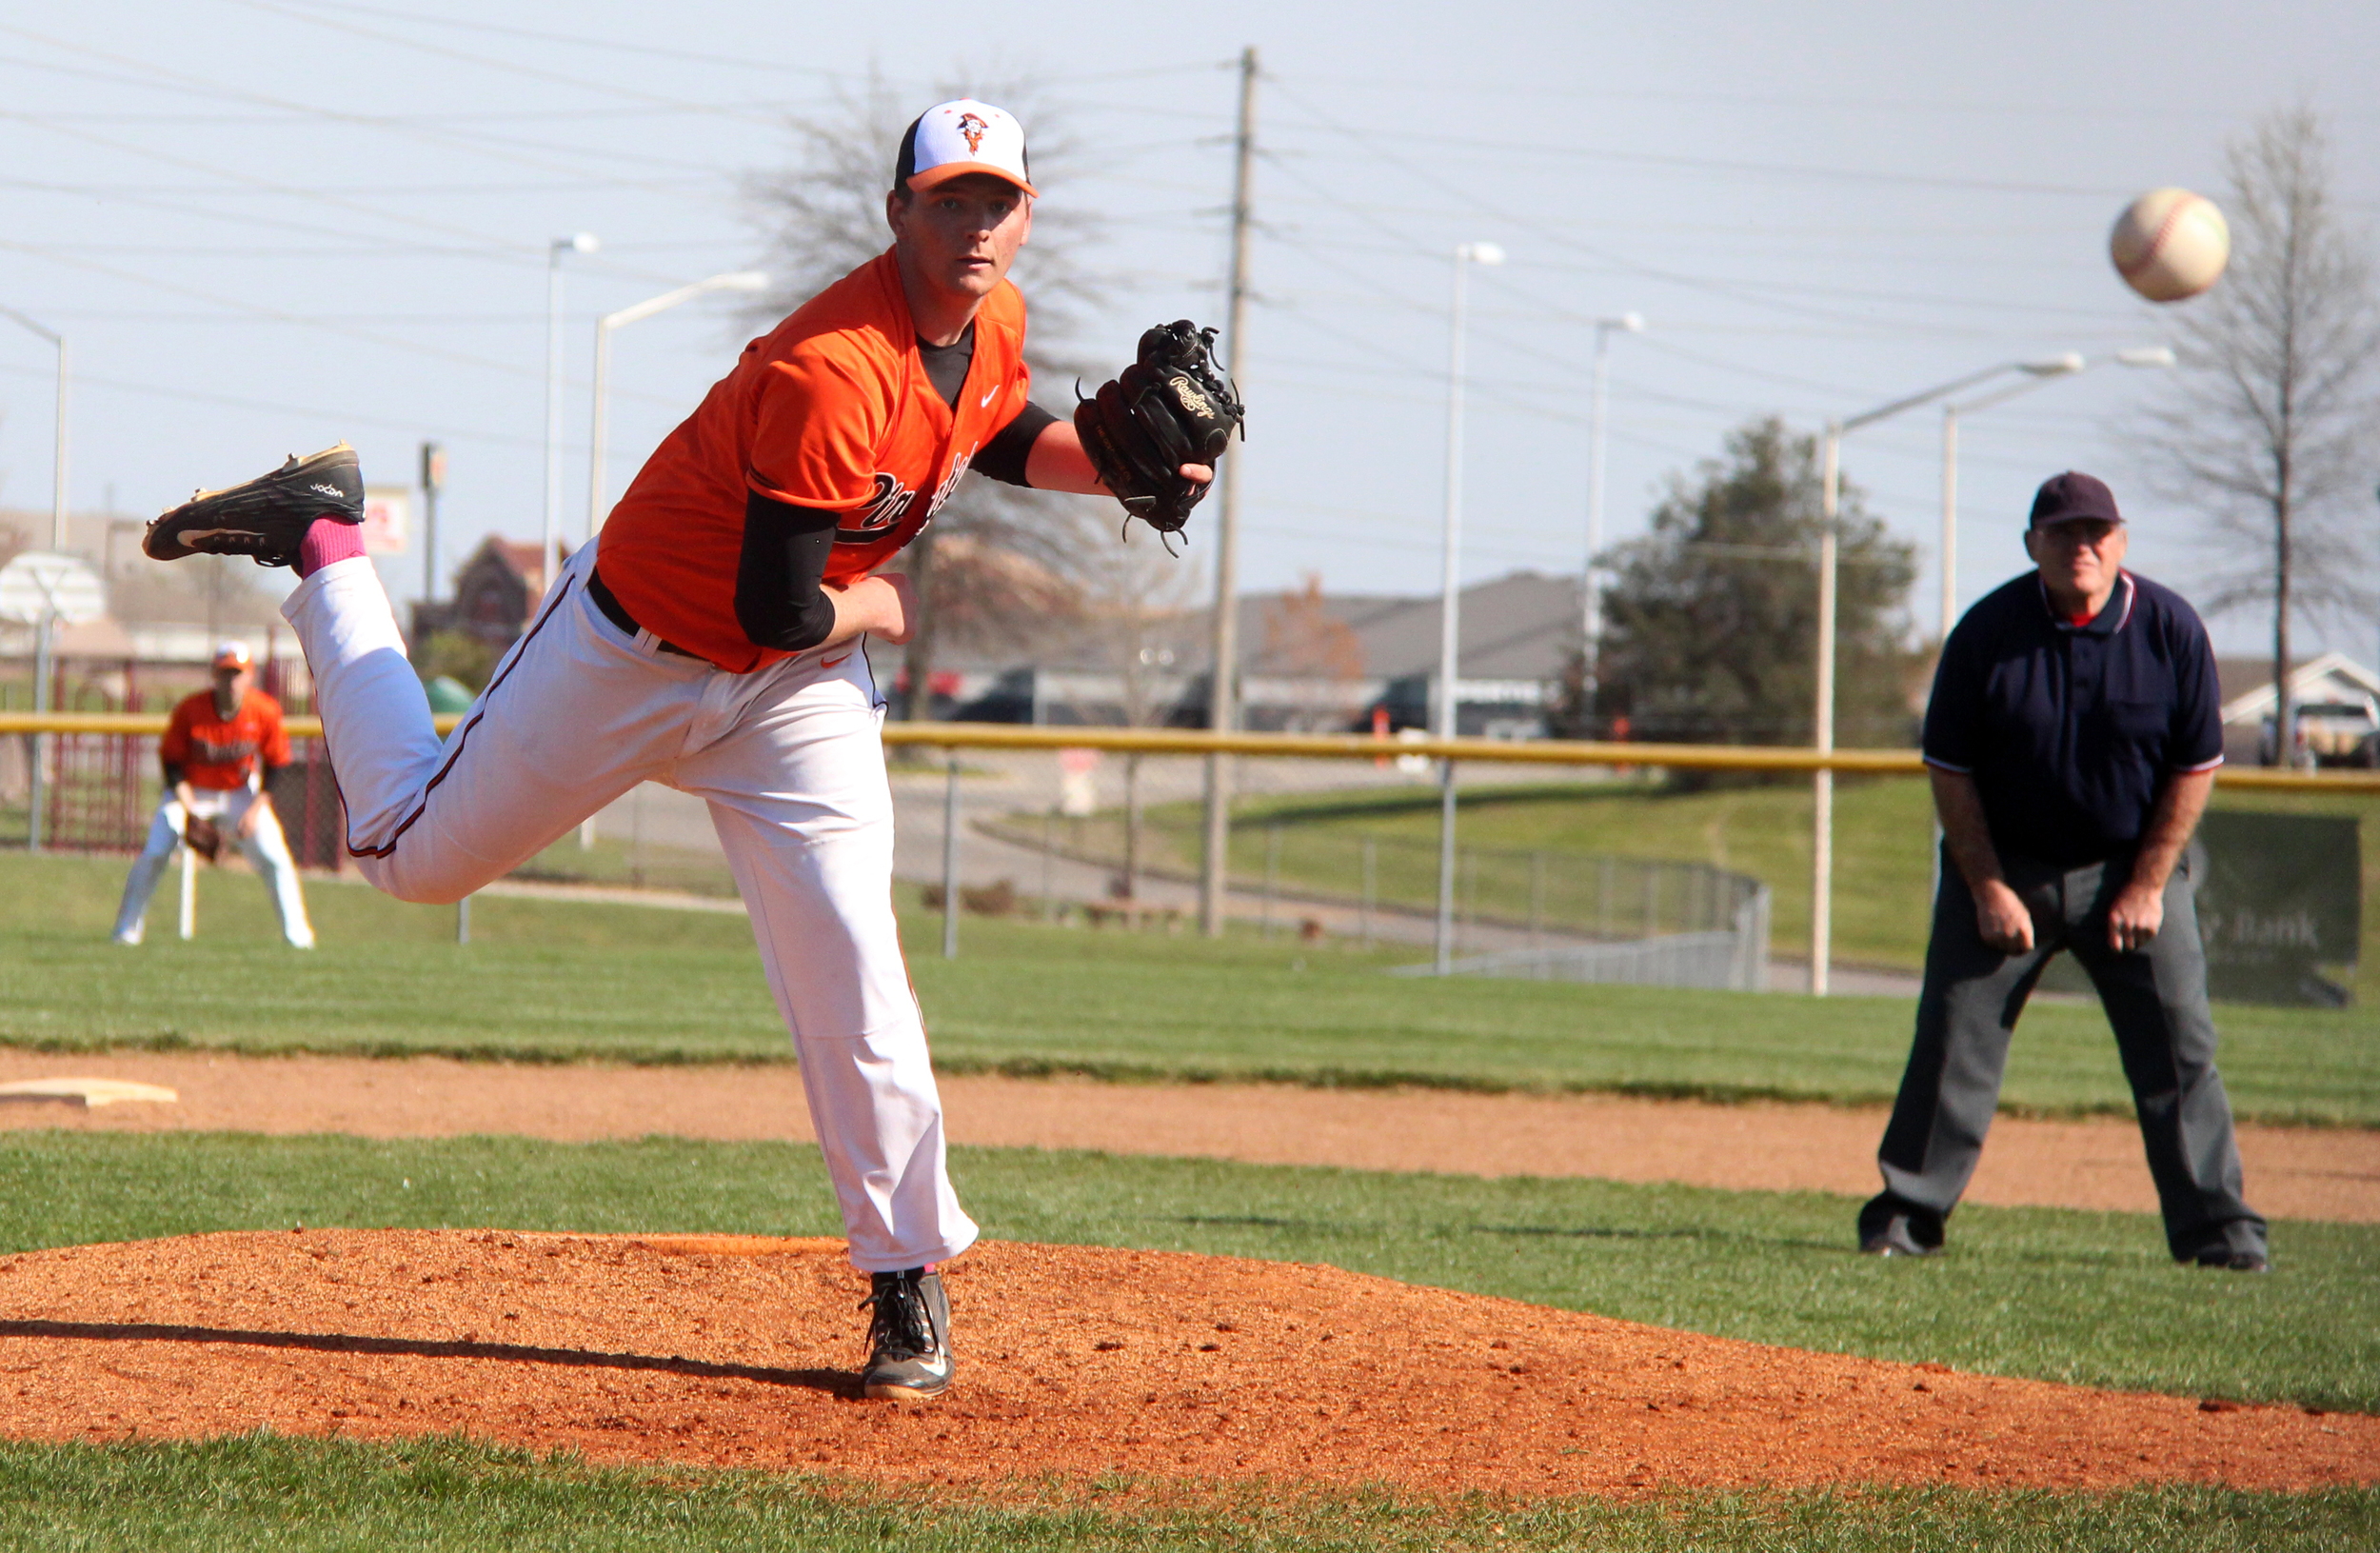 ROSS MARTIN/Citizen photo Platte County junior Grant Carver follows through on a pitch against Park Hill on Wednesday, April 13 at Platte County High School.